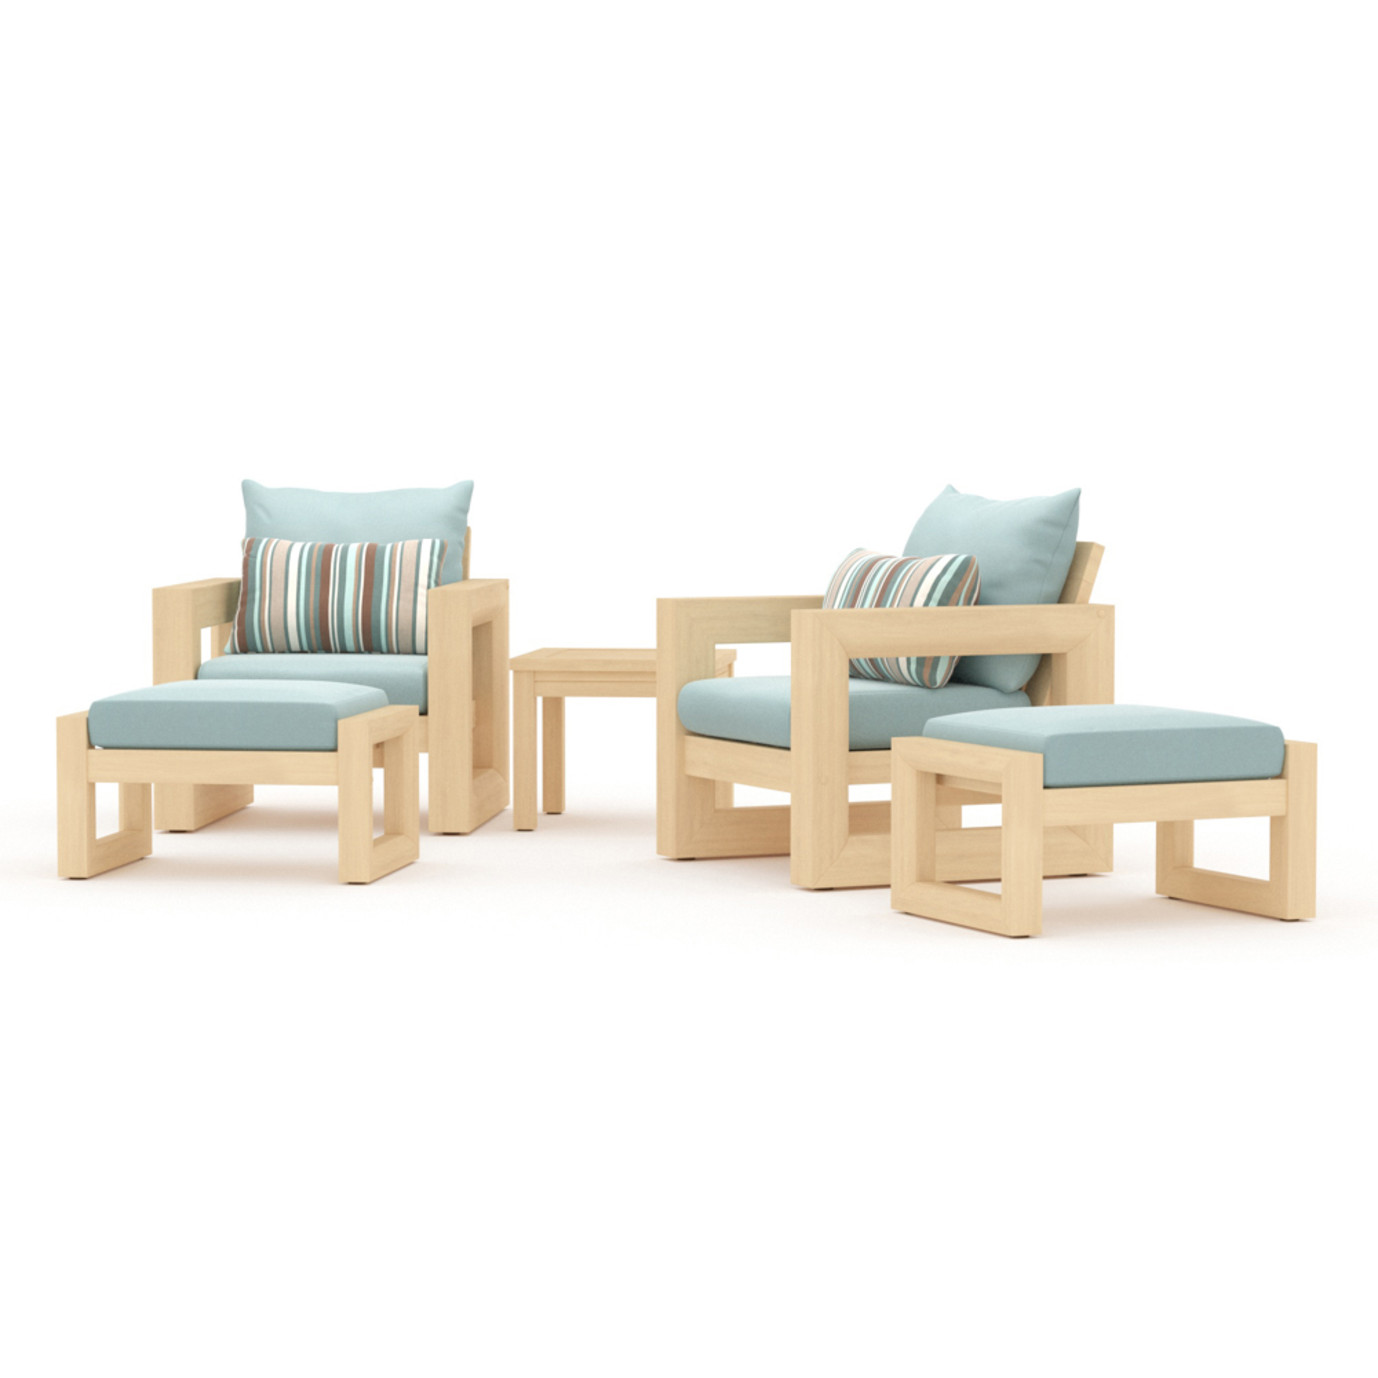 Benson 5 Piece Club Chair & Ottoman Set - Bliss Blue